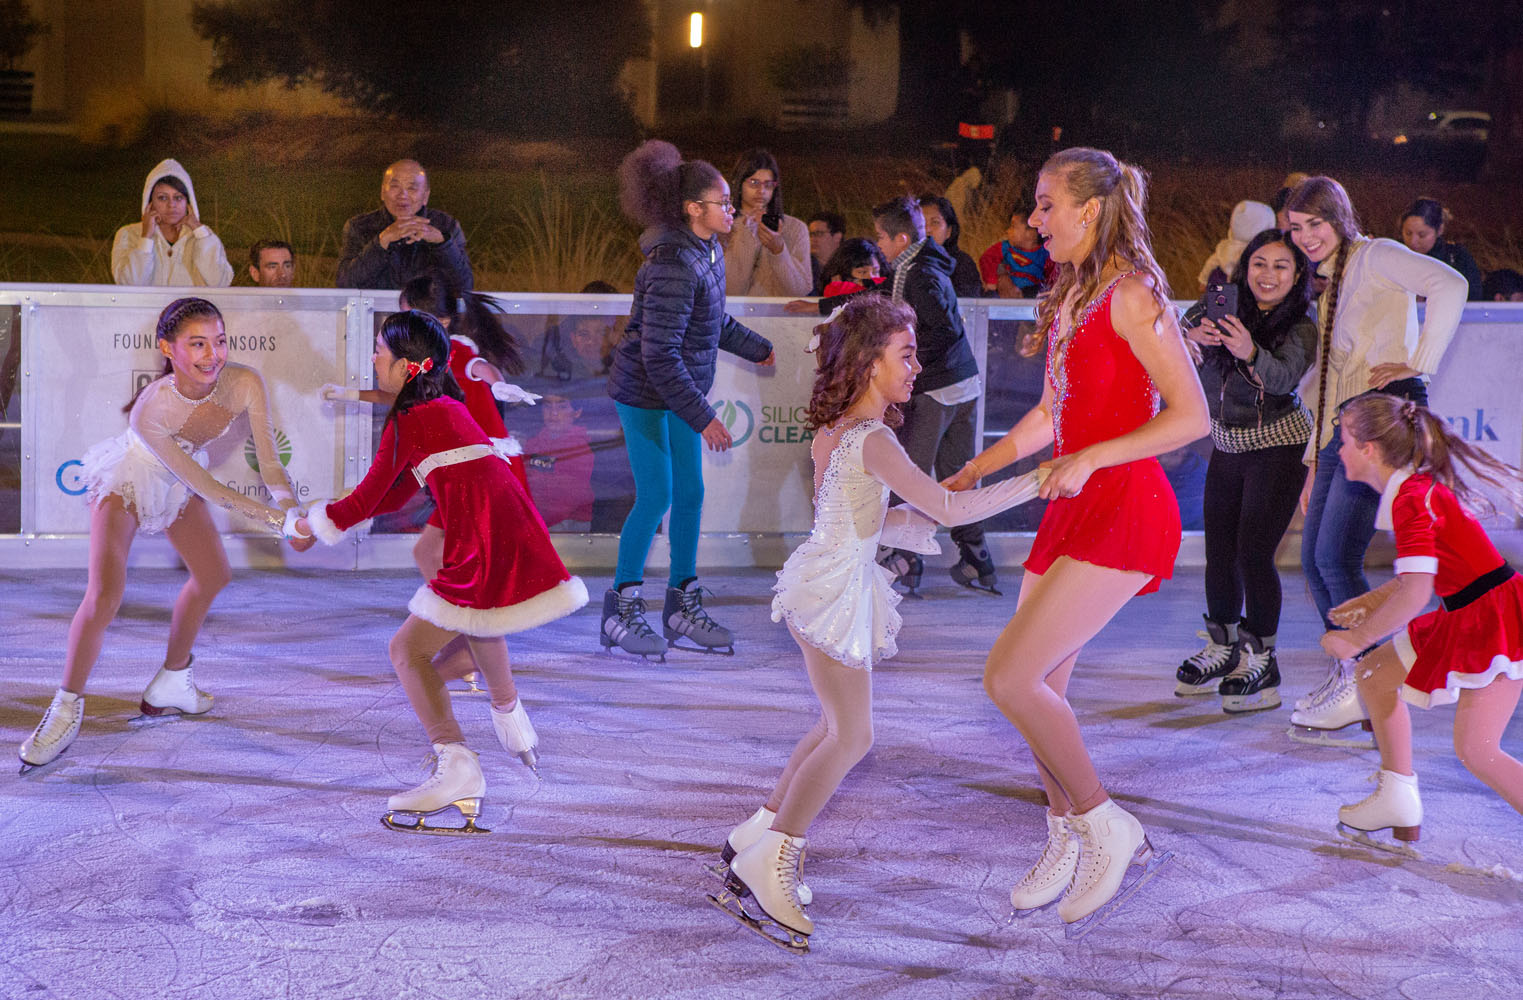 Dancing on the Ice in Sunnyvale, CA